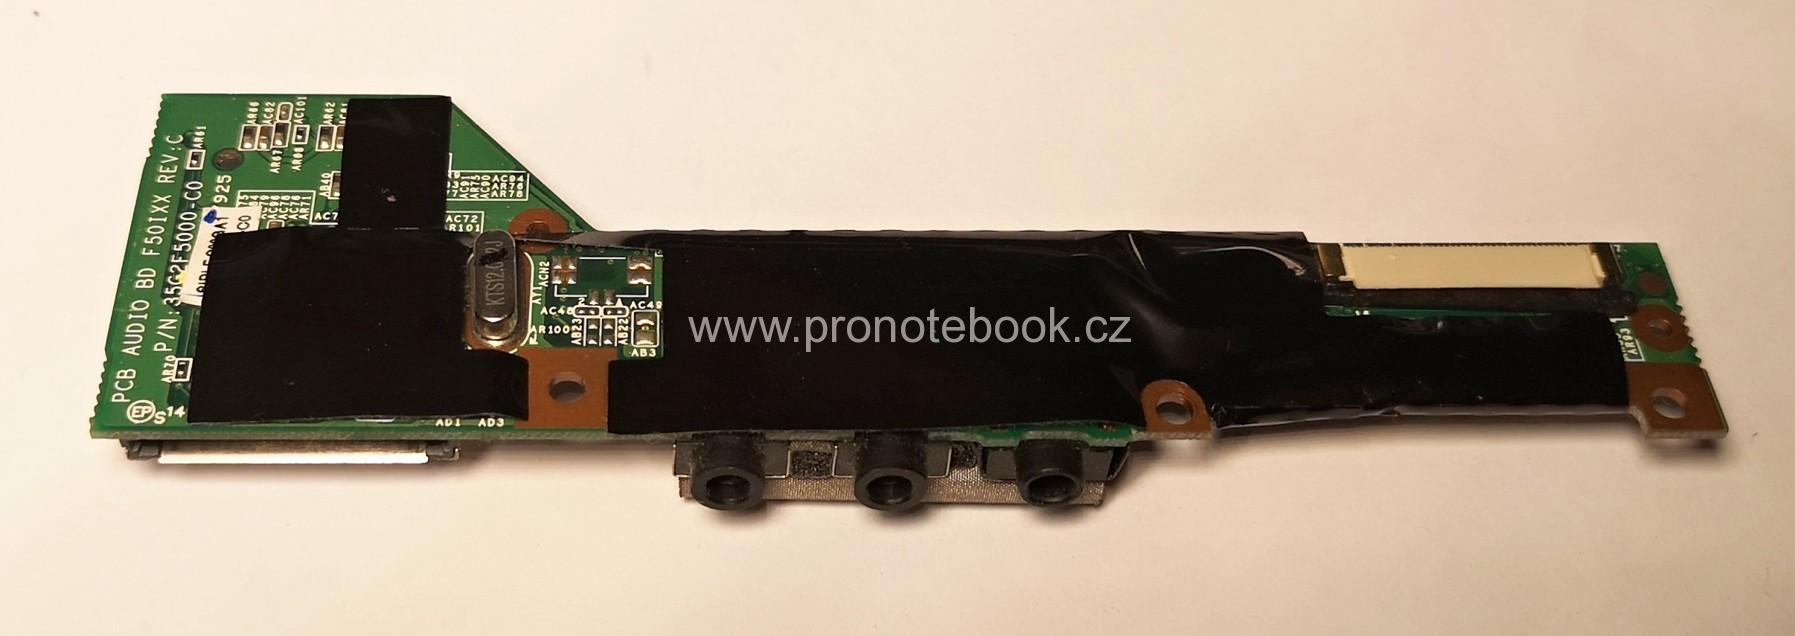 Audio Connector Reader Card Fujitsu Amilo Pi3540 3525 35G2F5000-C0	SKLADEM